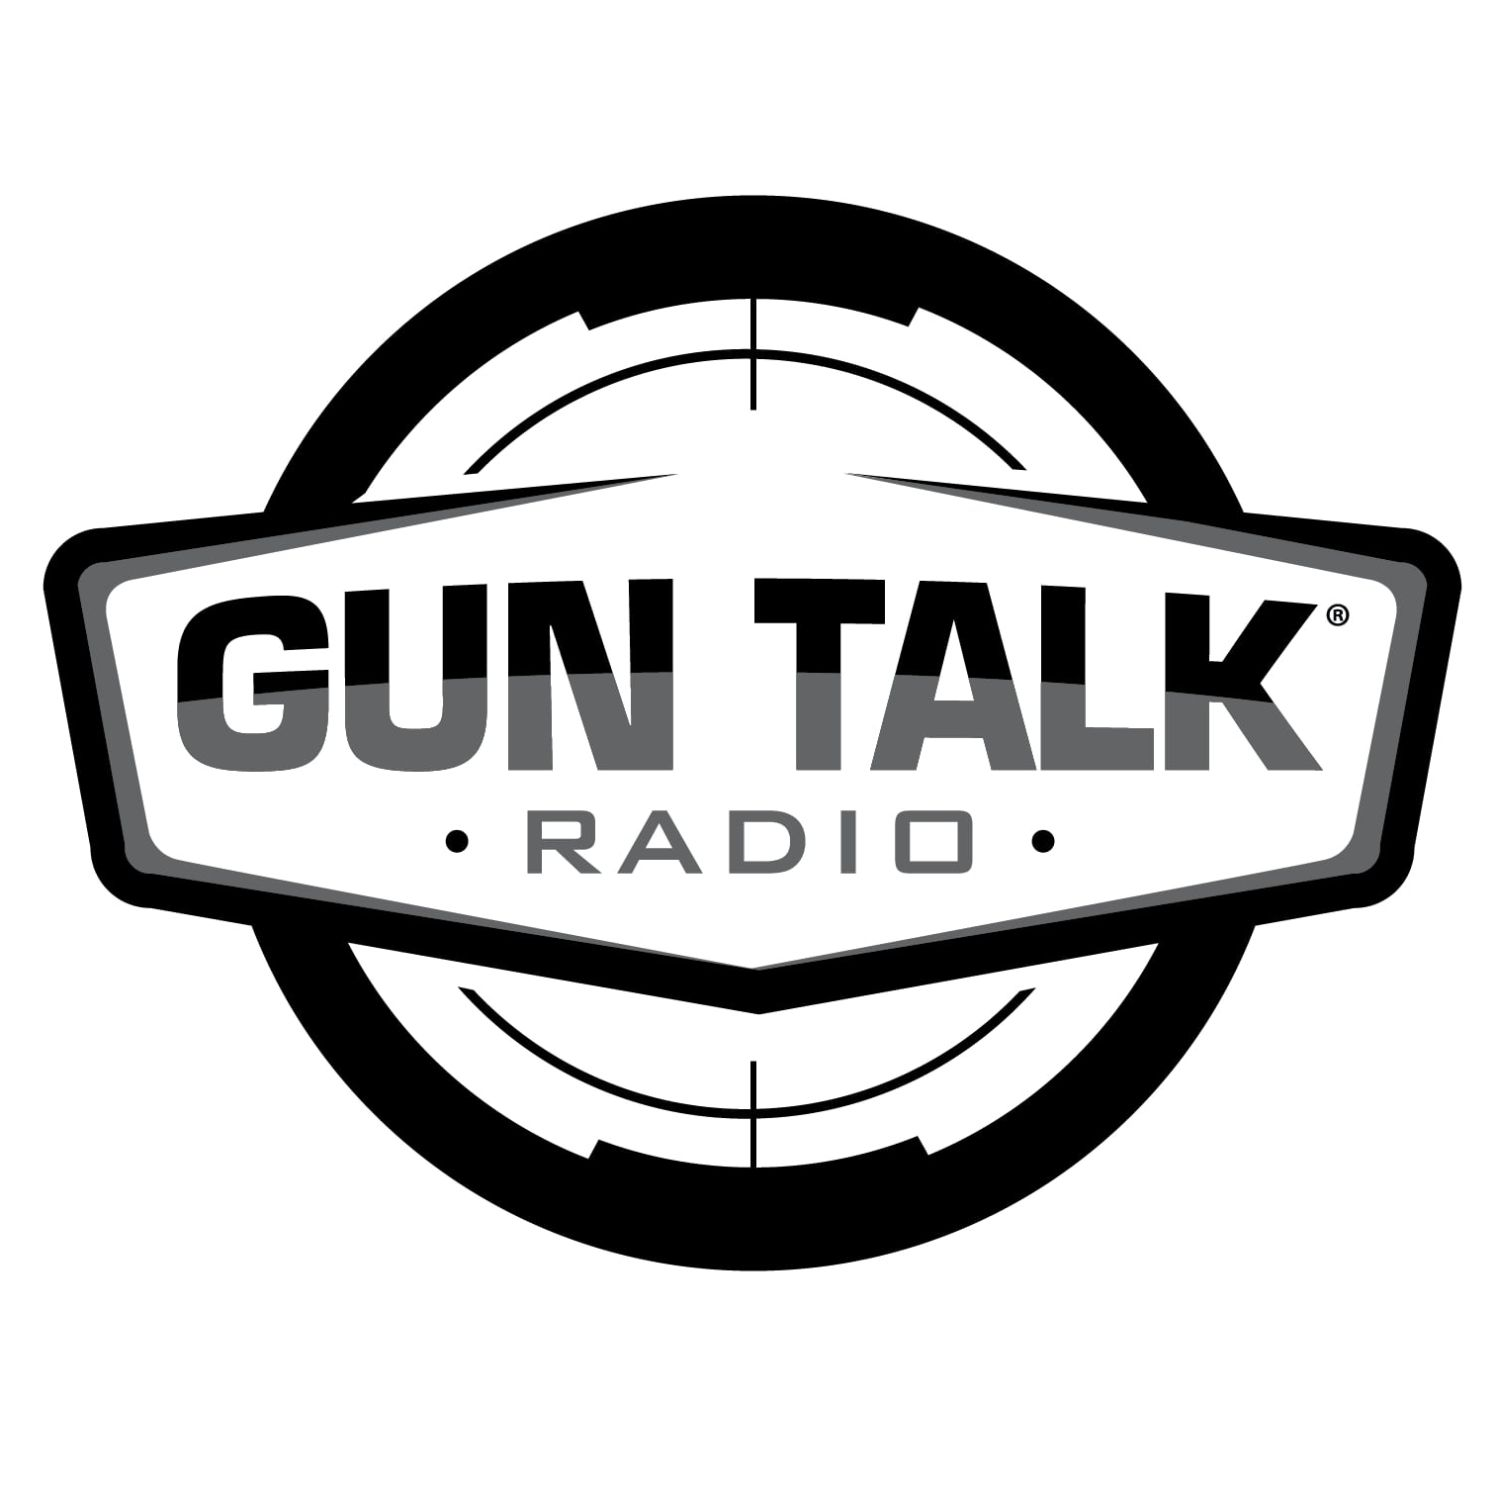 Artwork for Guntalk 2009-09-06 Part C